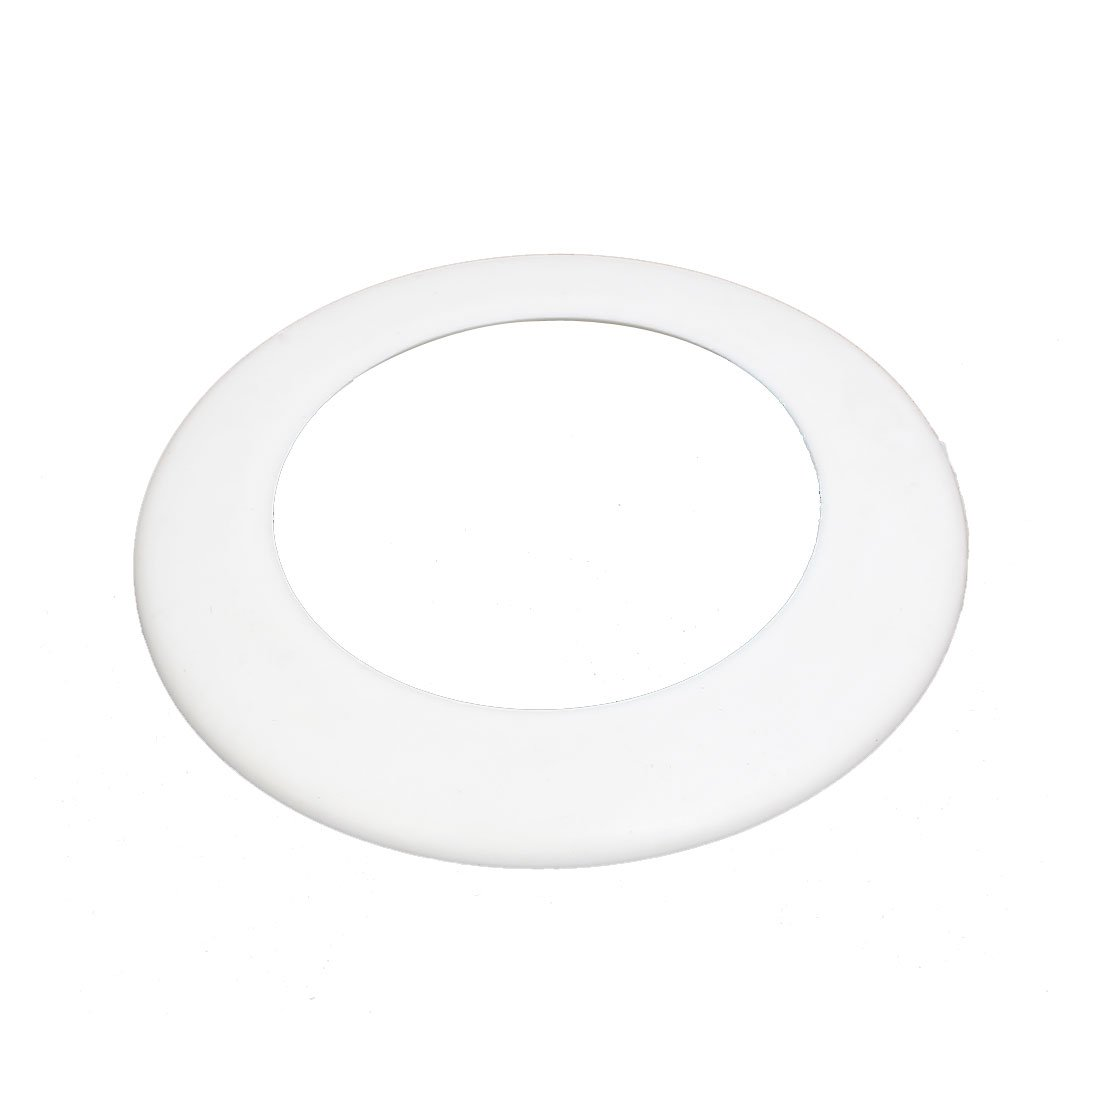 uxcell PVC Wall Flange Water Pipe Collar Cover Cap White for 63mm Drainpipe